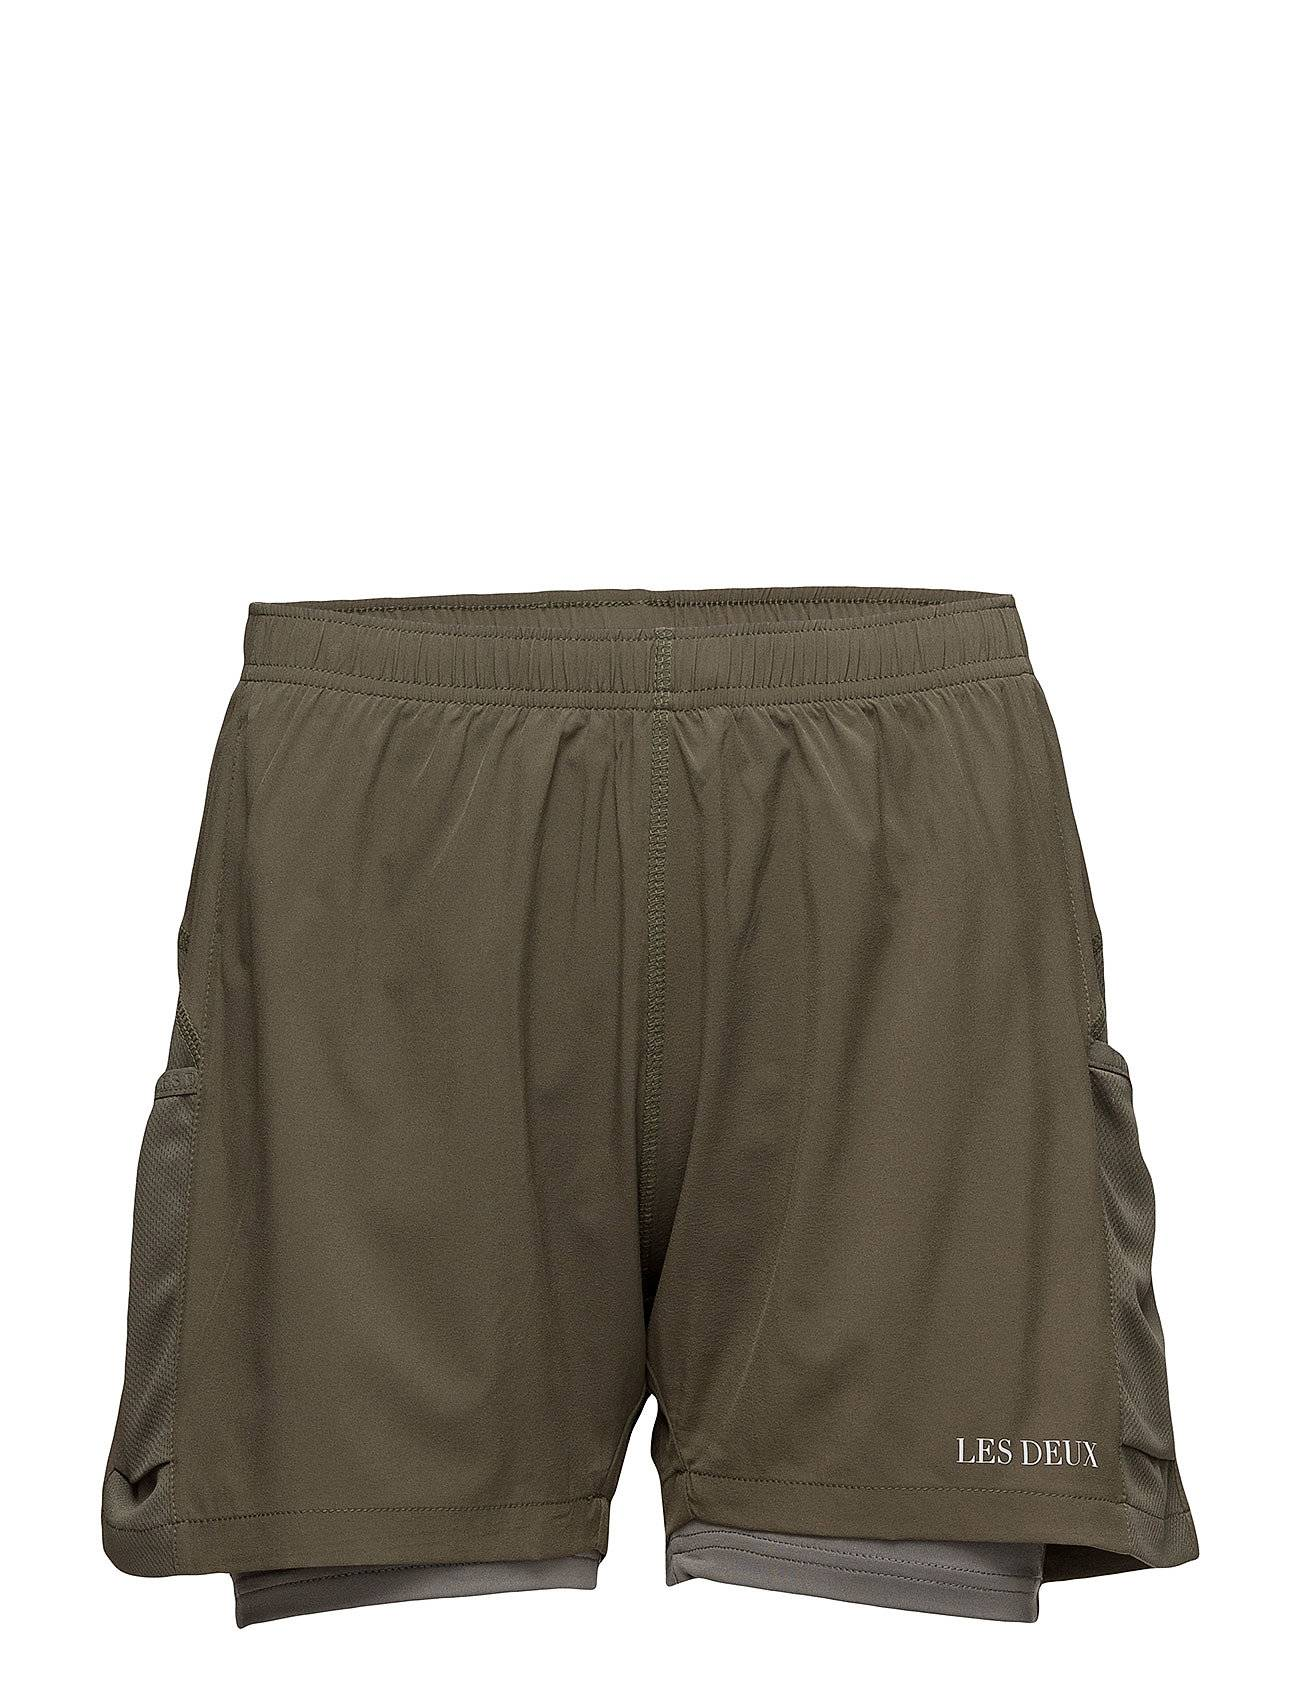 Tracks by Les Deux 2-In-1 Shorts Bergen